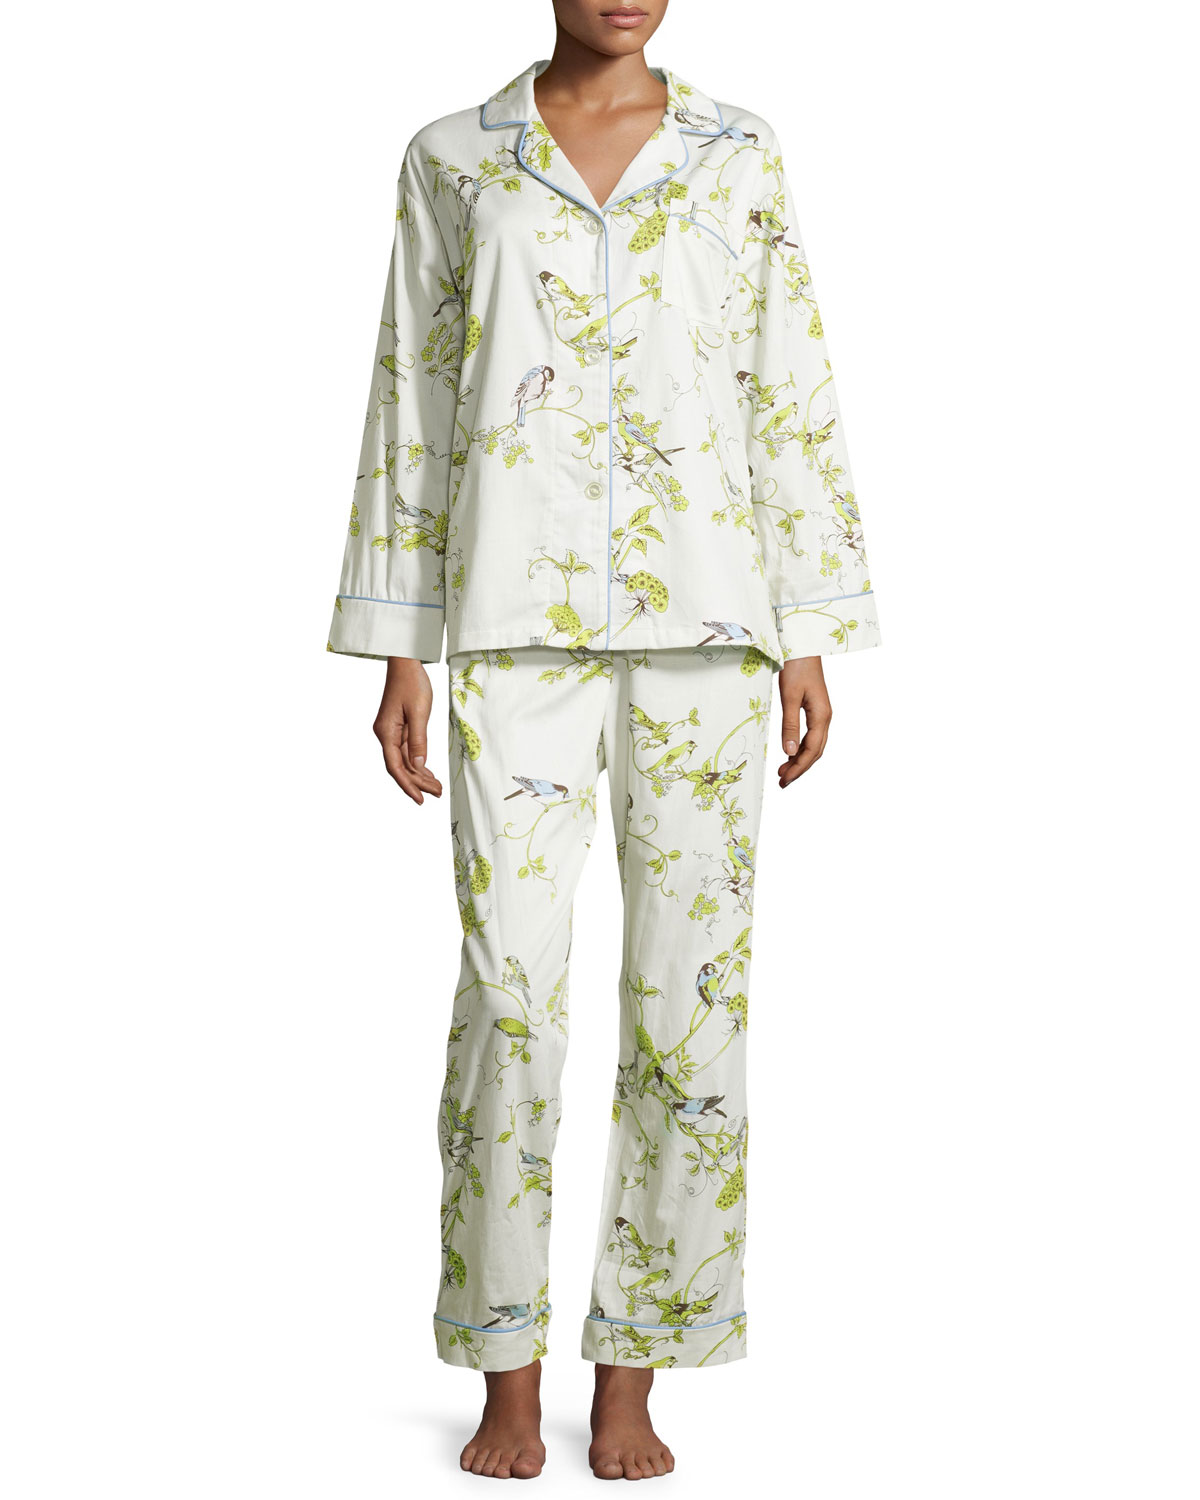 Winter Cardinal Classic Pajama Set, Birds and Branches, Size: LARGE, Birds & Branches - Bedhead